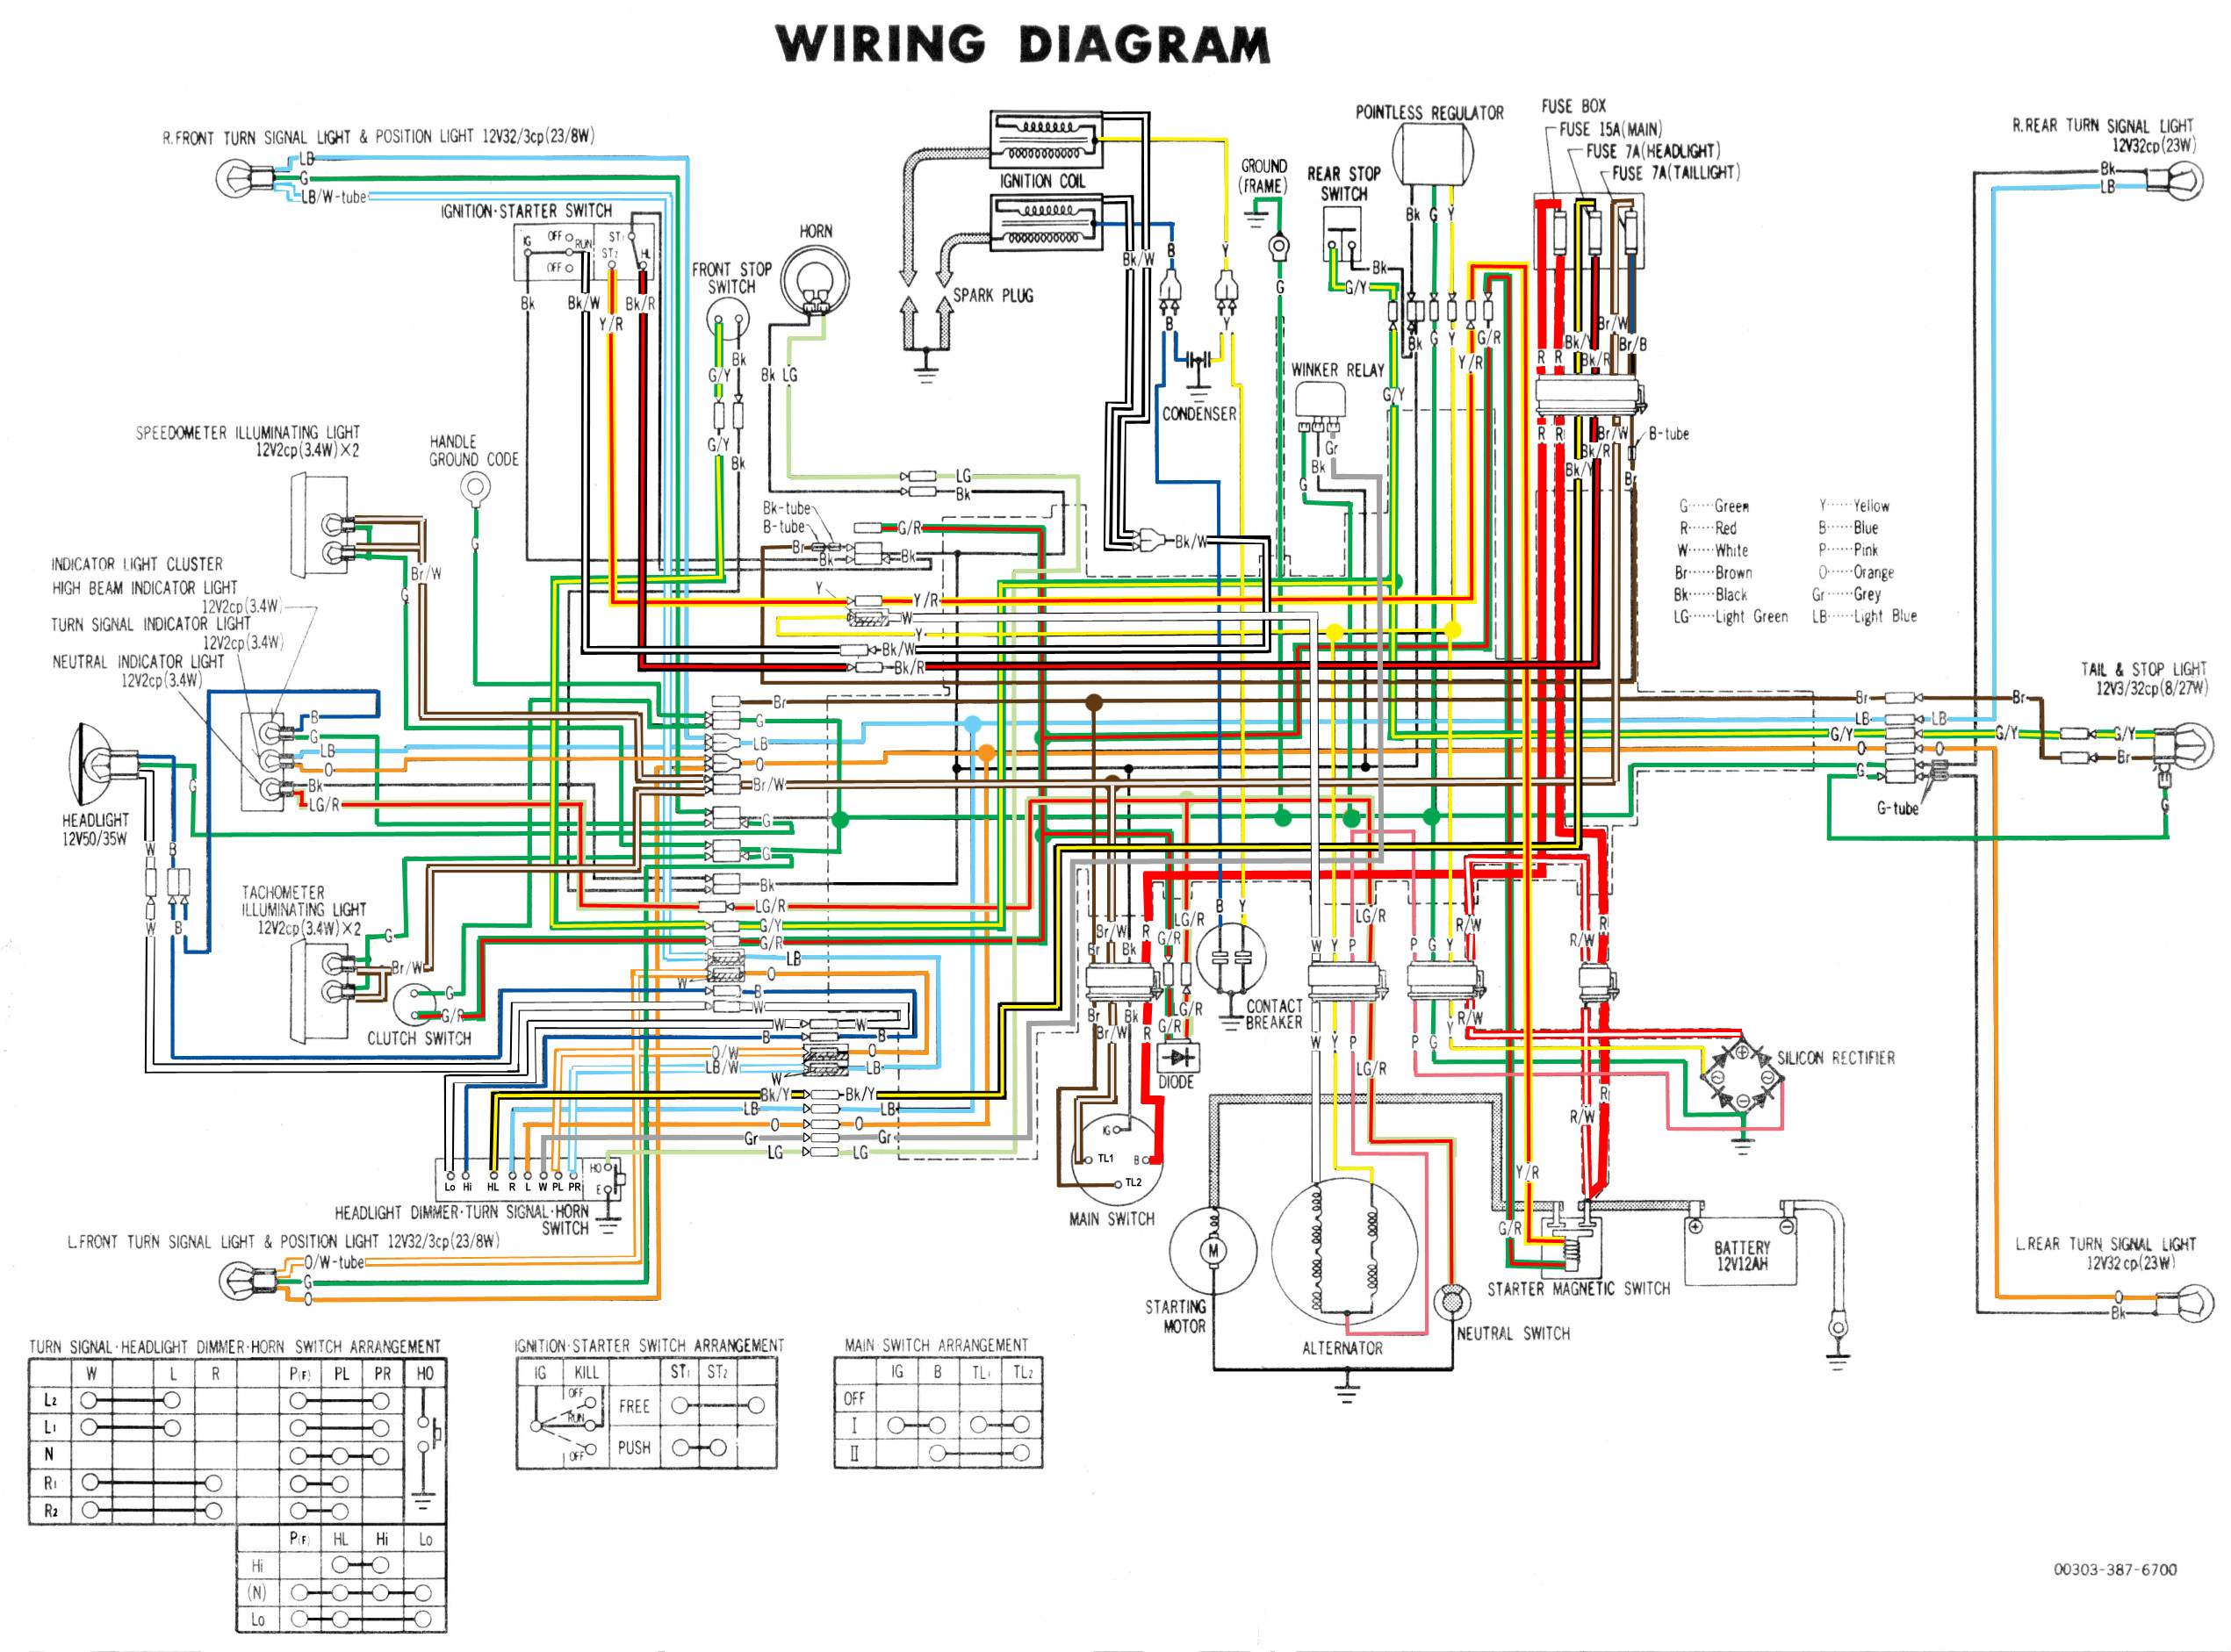 wire harness build with 14014 Cheap Regulator Rectifier Upgrade 43 on Index php moreover Electronic Circuit Diagrams Software as well Schematic in addition  as well Does Decreasing The Length Of The Line Between A Harness And Zip Wire Increase T.